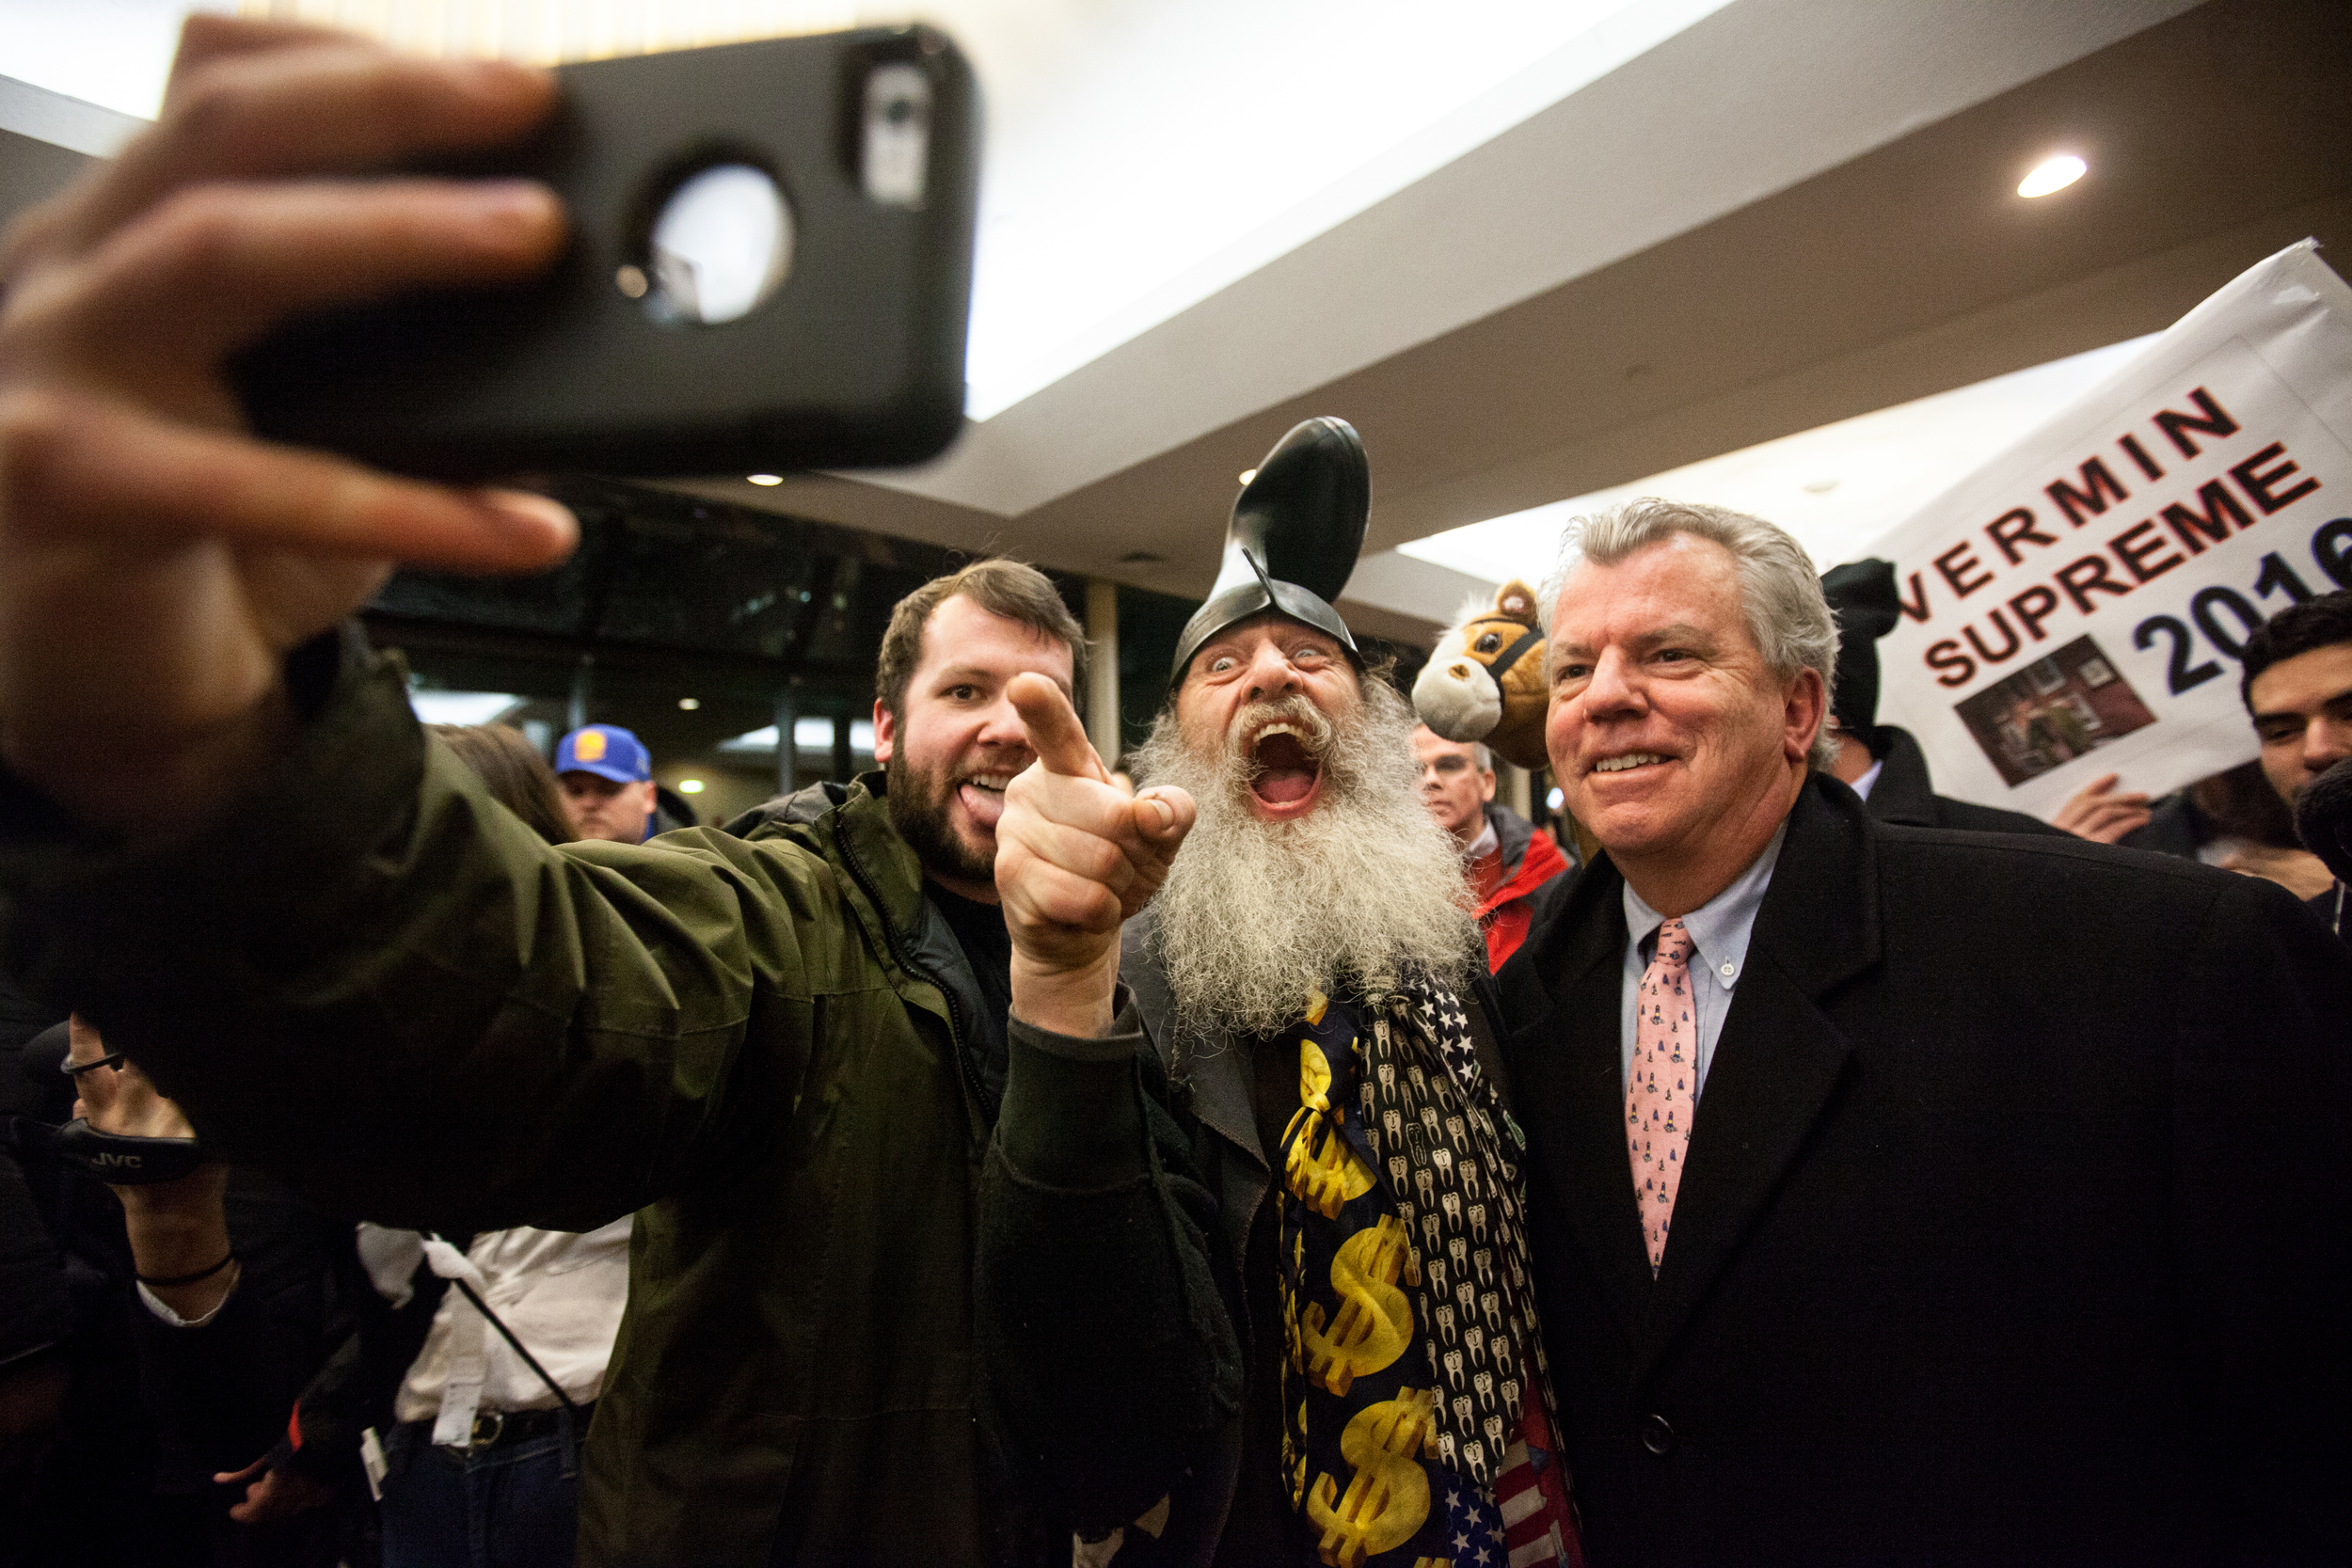 Manchester, NH,Feb. 9, 2016 - Fans take a selfie with U.S. presidential candidate, performance artist and activist Vermin Love Supreme outside of Marco Rubio's New Hampshire Primary watch party at the Radisson Hotel. Photo by Alexandra Wimley